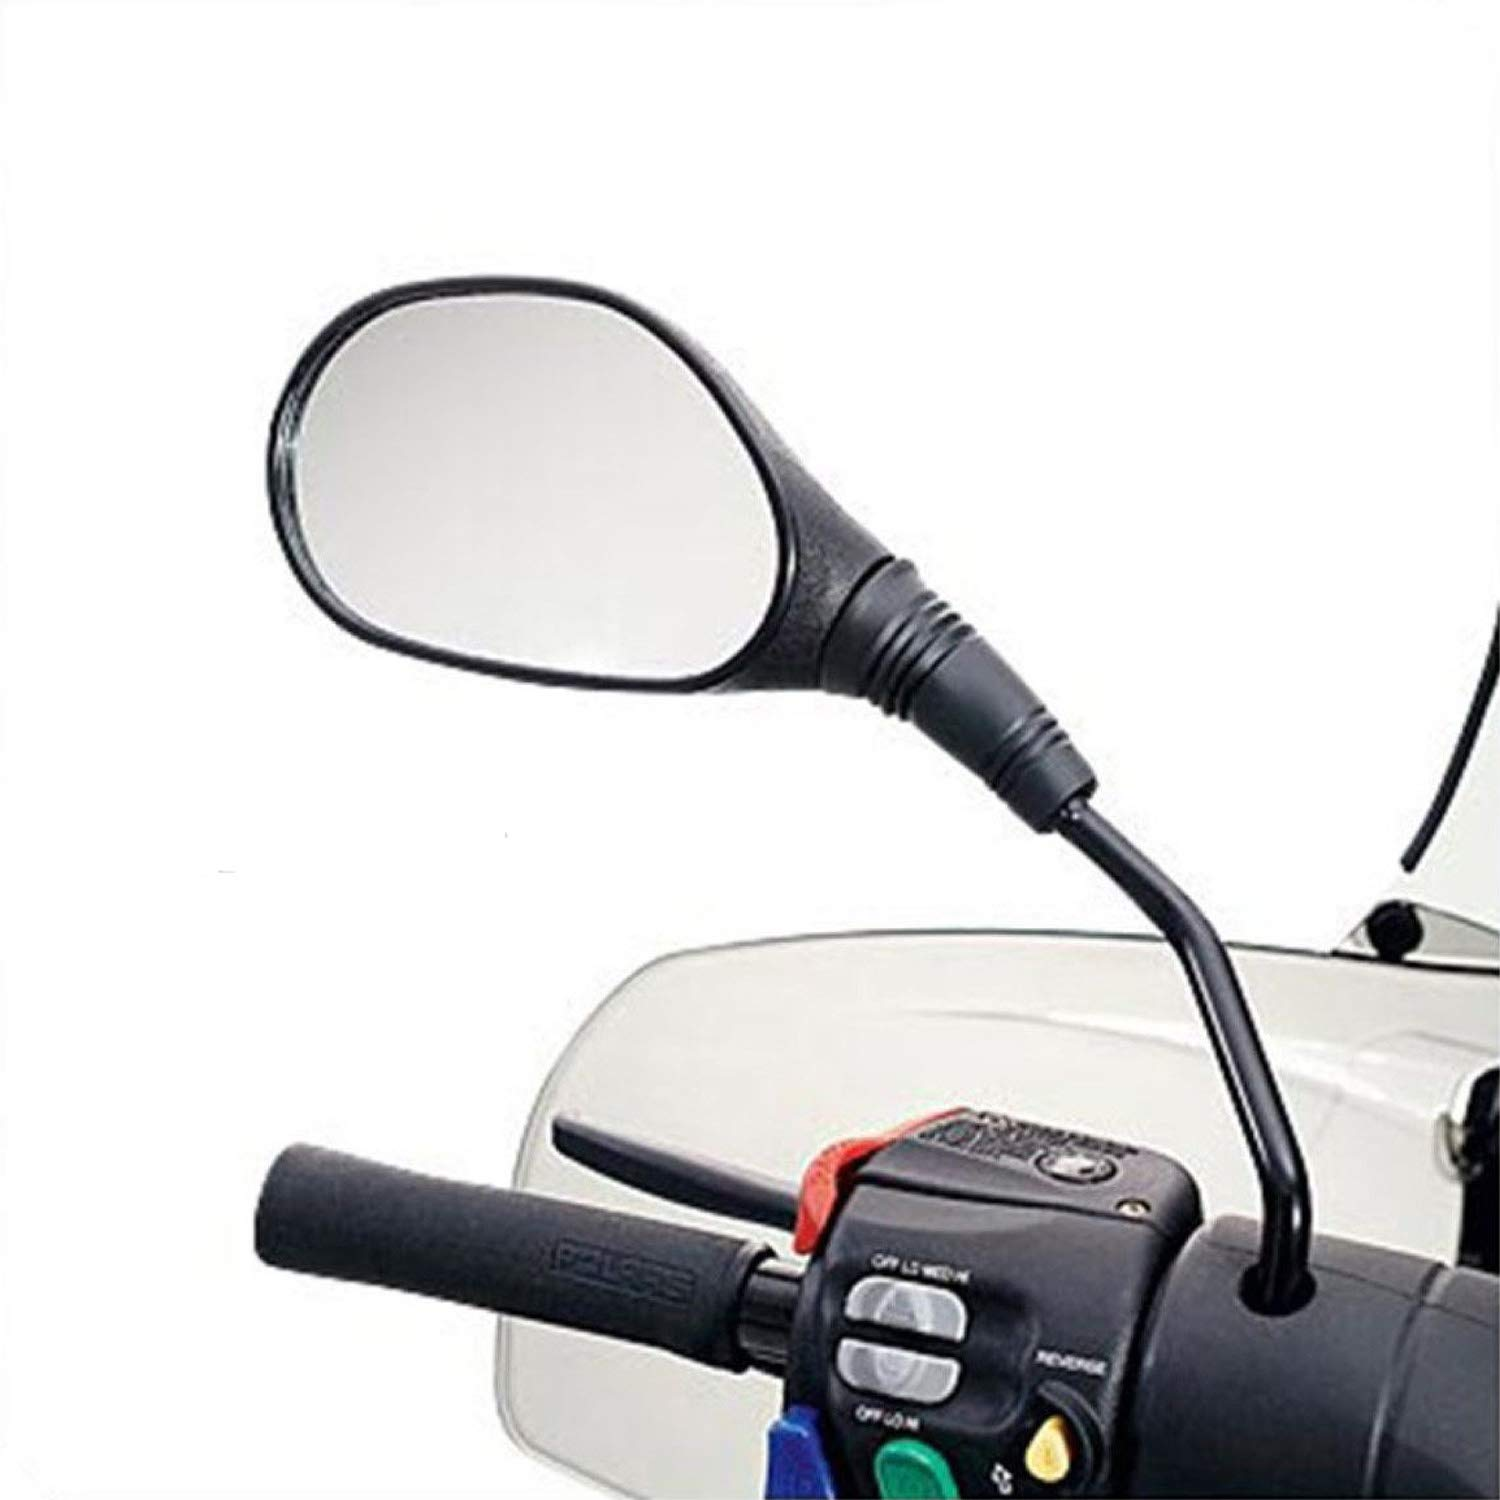 2876297 Polaris Snowmobile Handlebar Mirrors